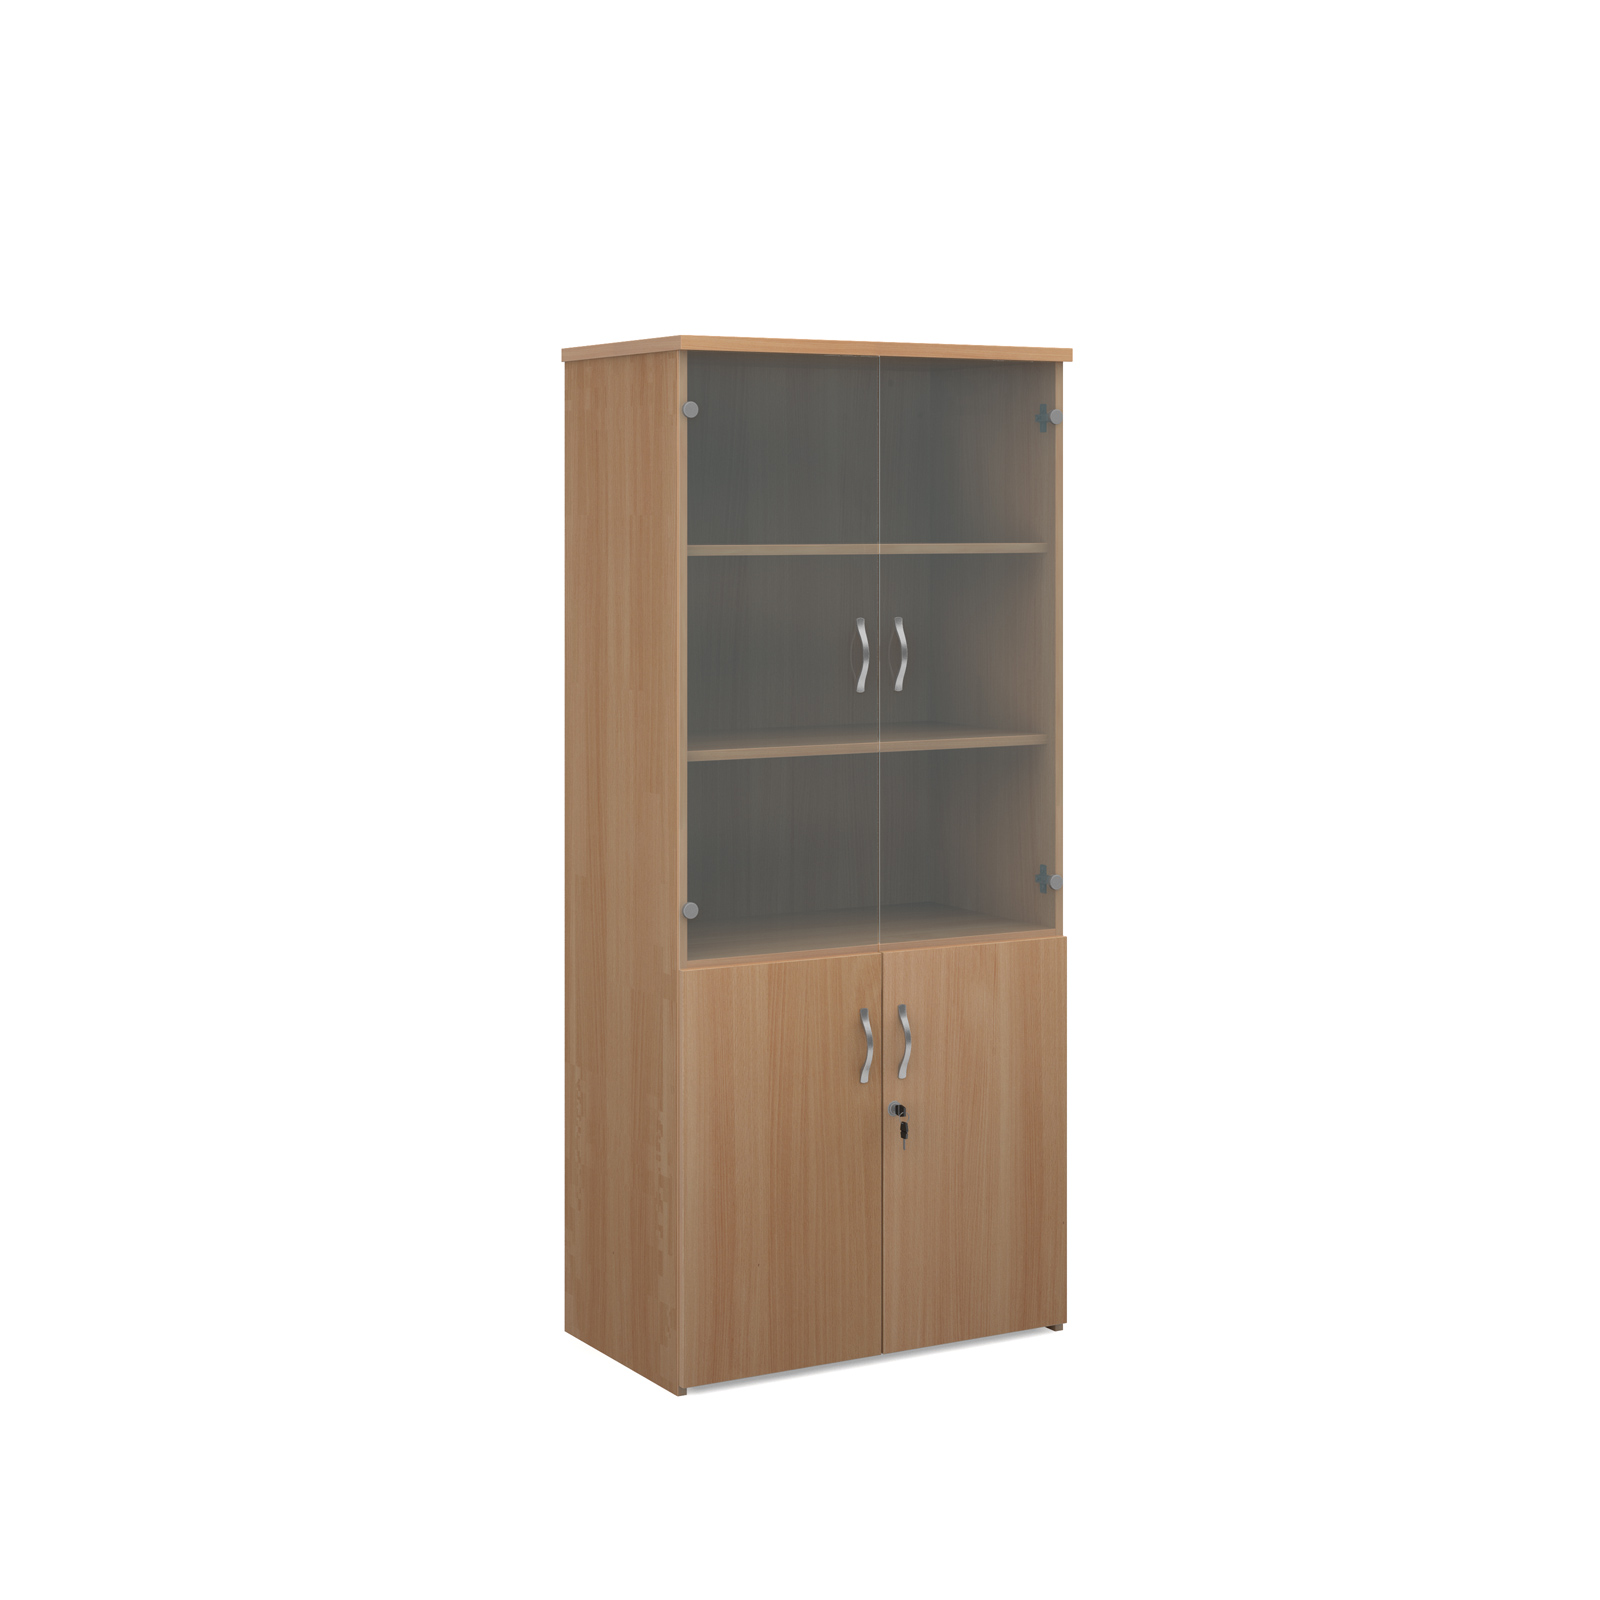 1790mm high combination unit with glass and wood doors in beech